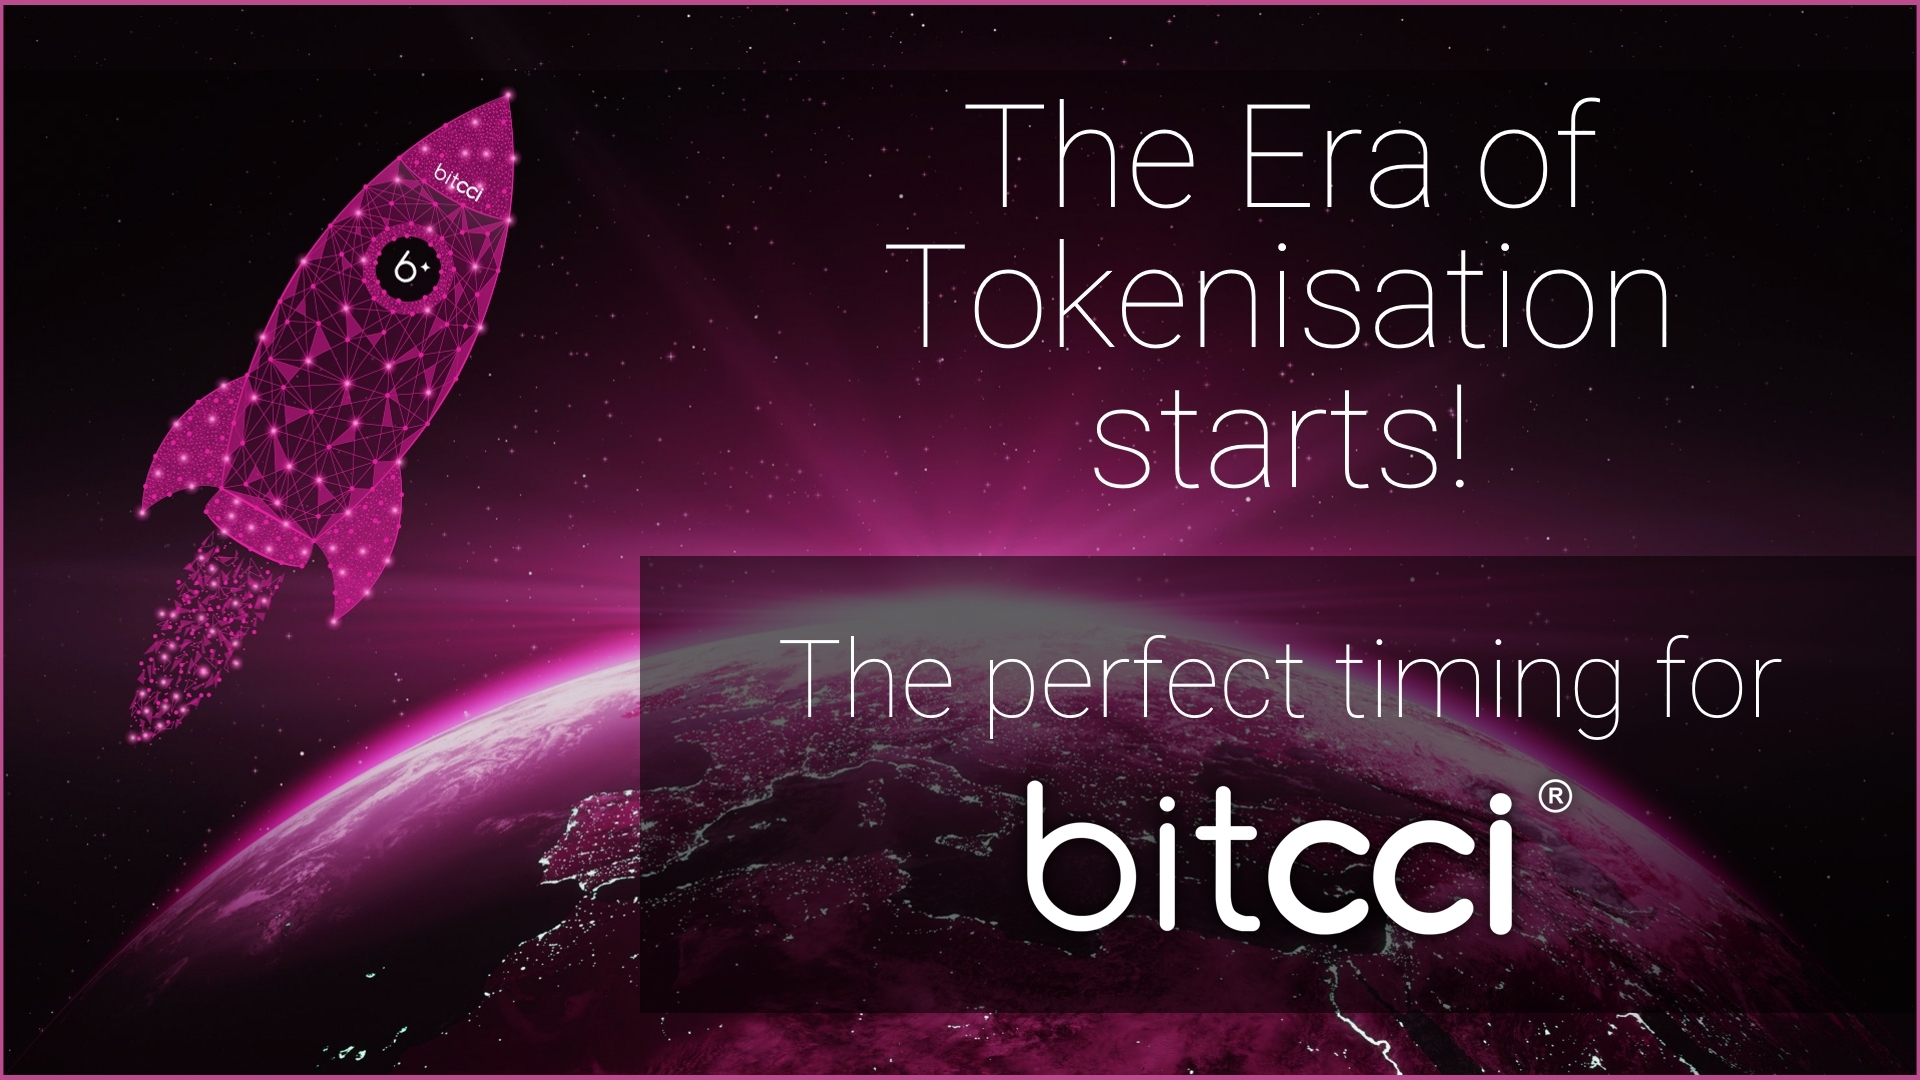 The Era of Tokenisation starts. The perfect timing for bitcci.